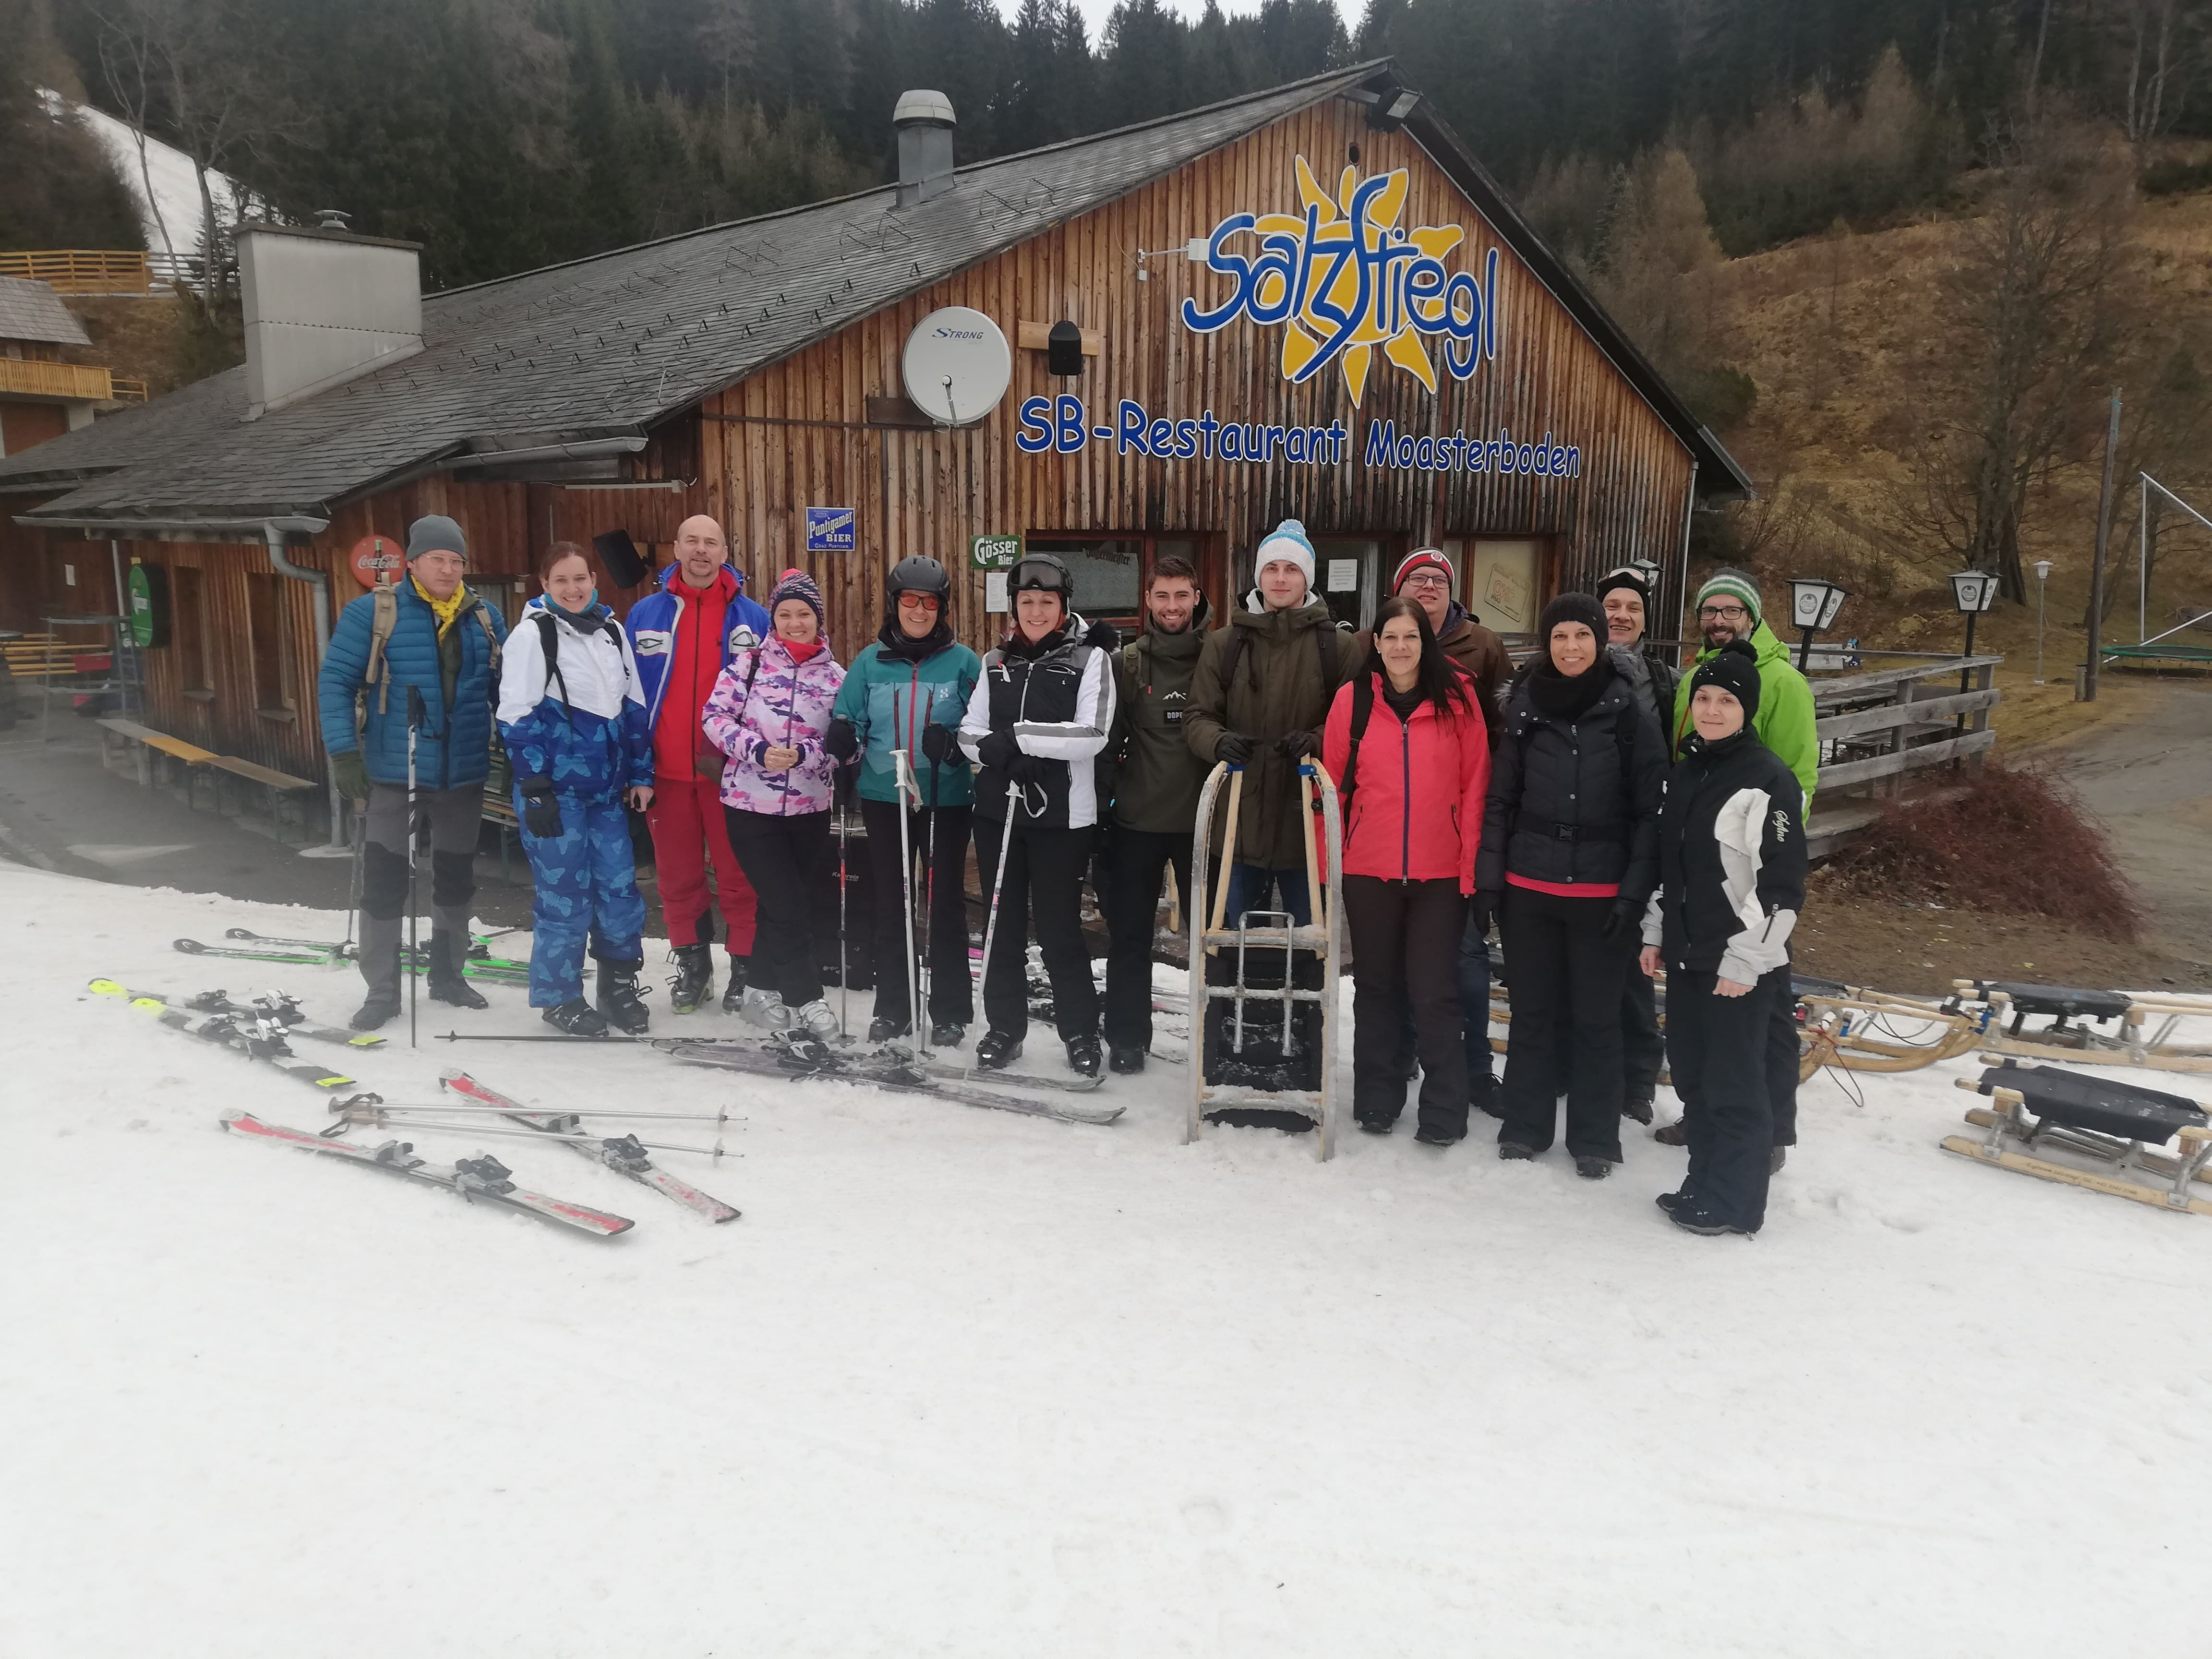 Skiing day 2020